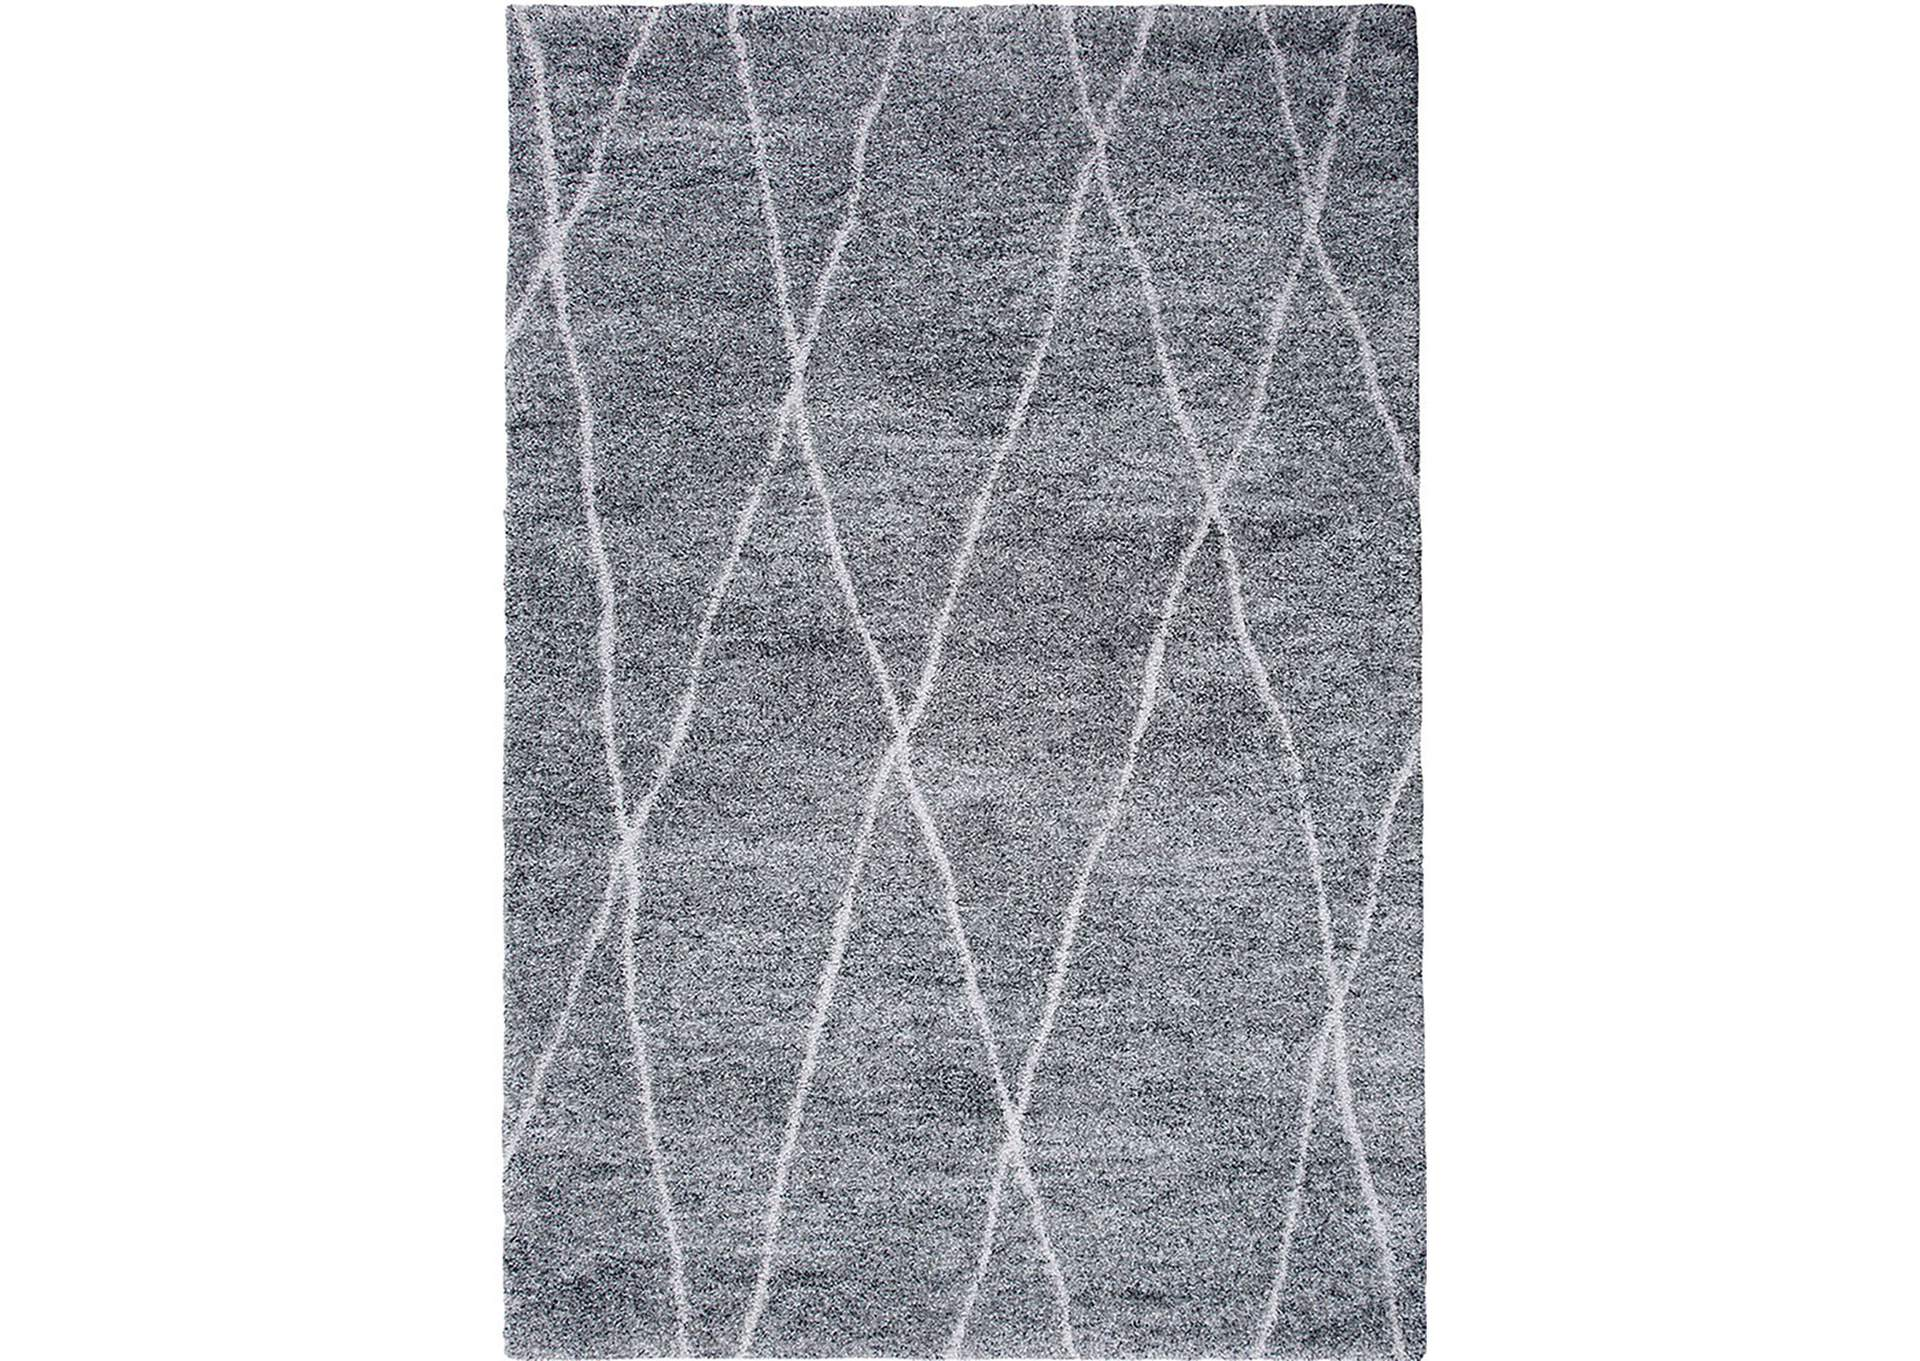 Gresford Gray Area Rug,Furniture of America